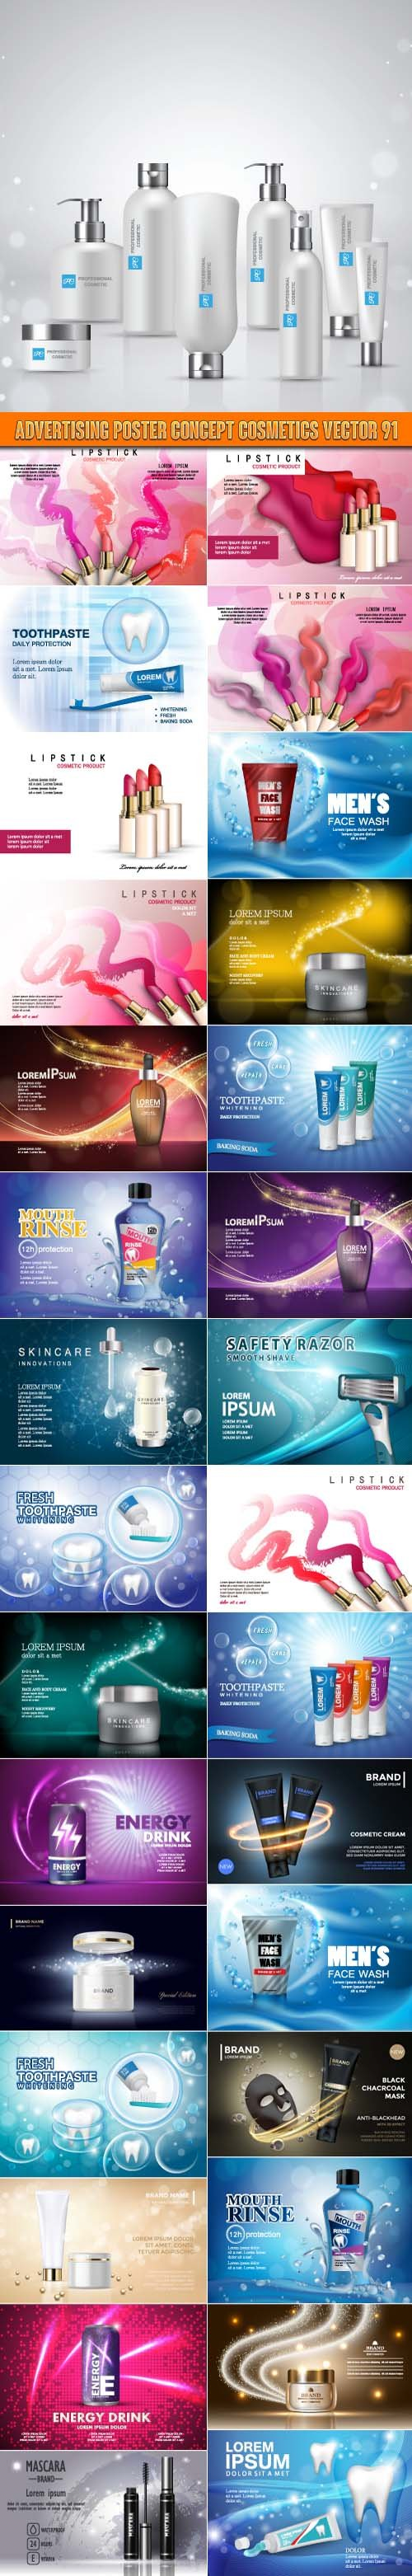 Advertising Poster Concept Cosmetics vector 91